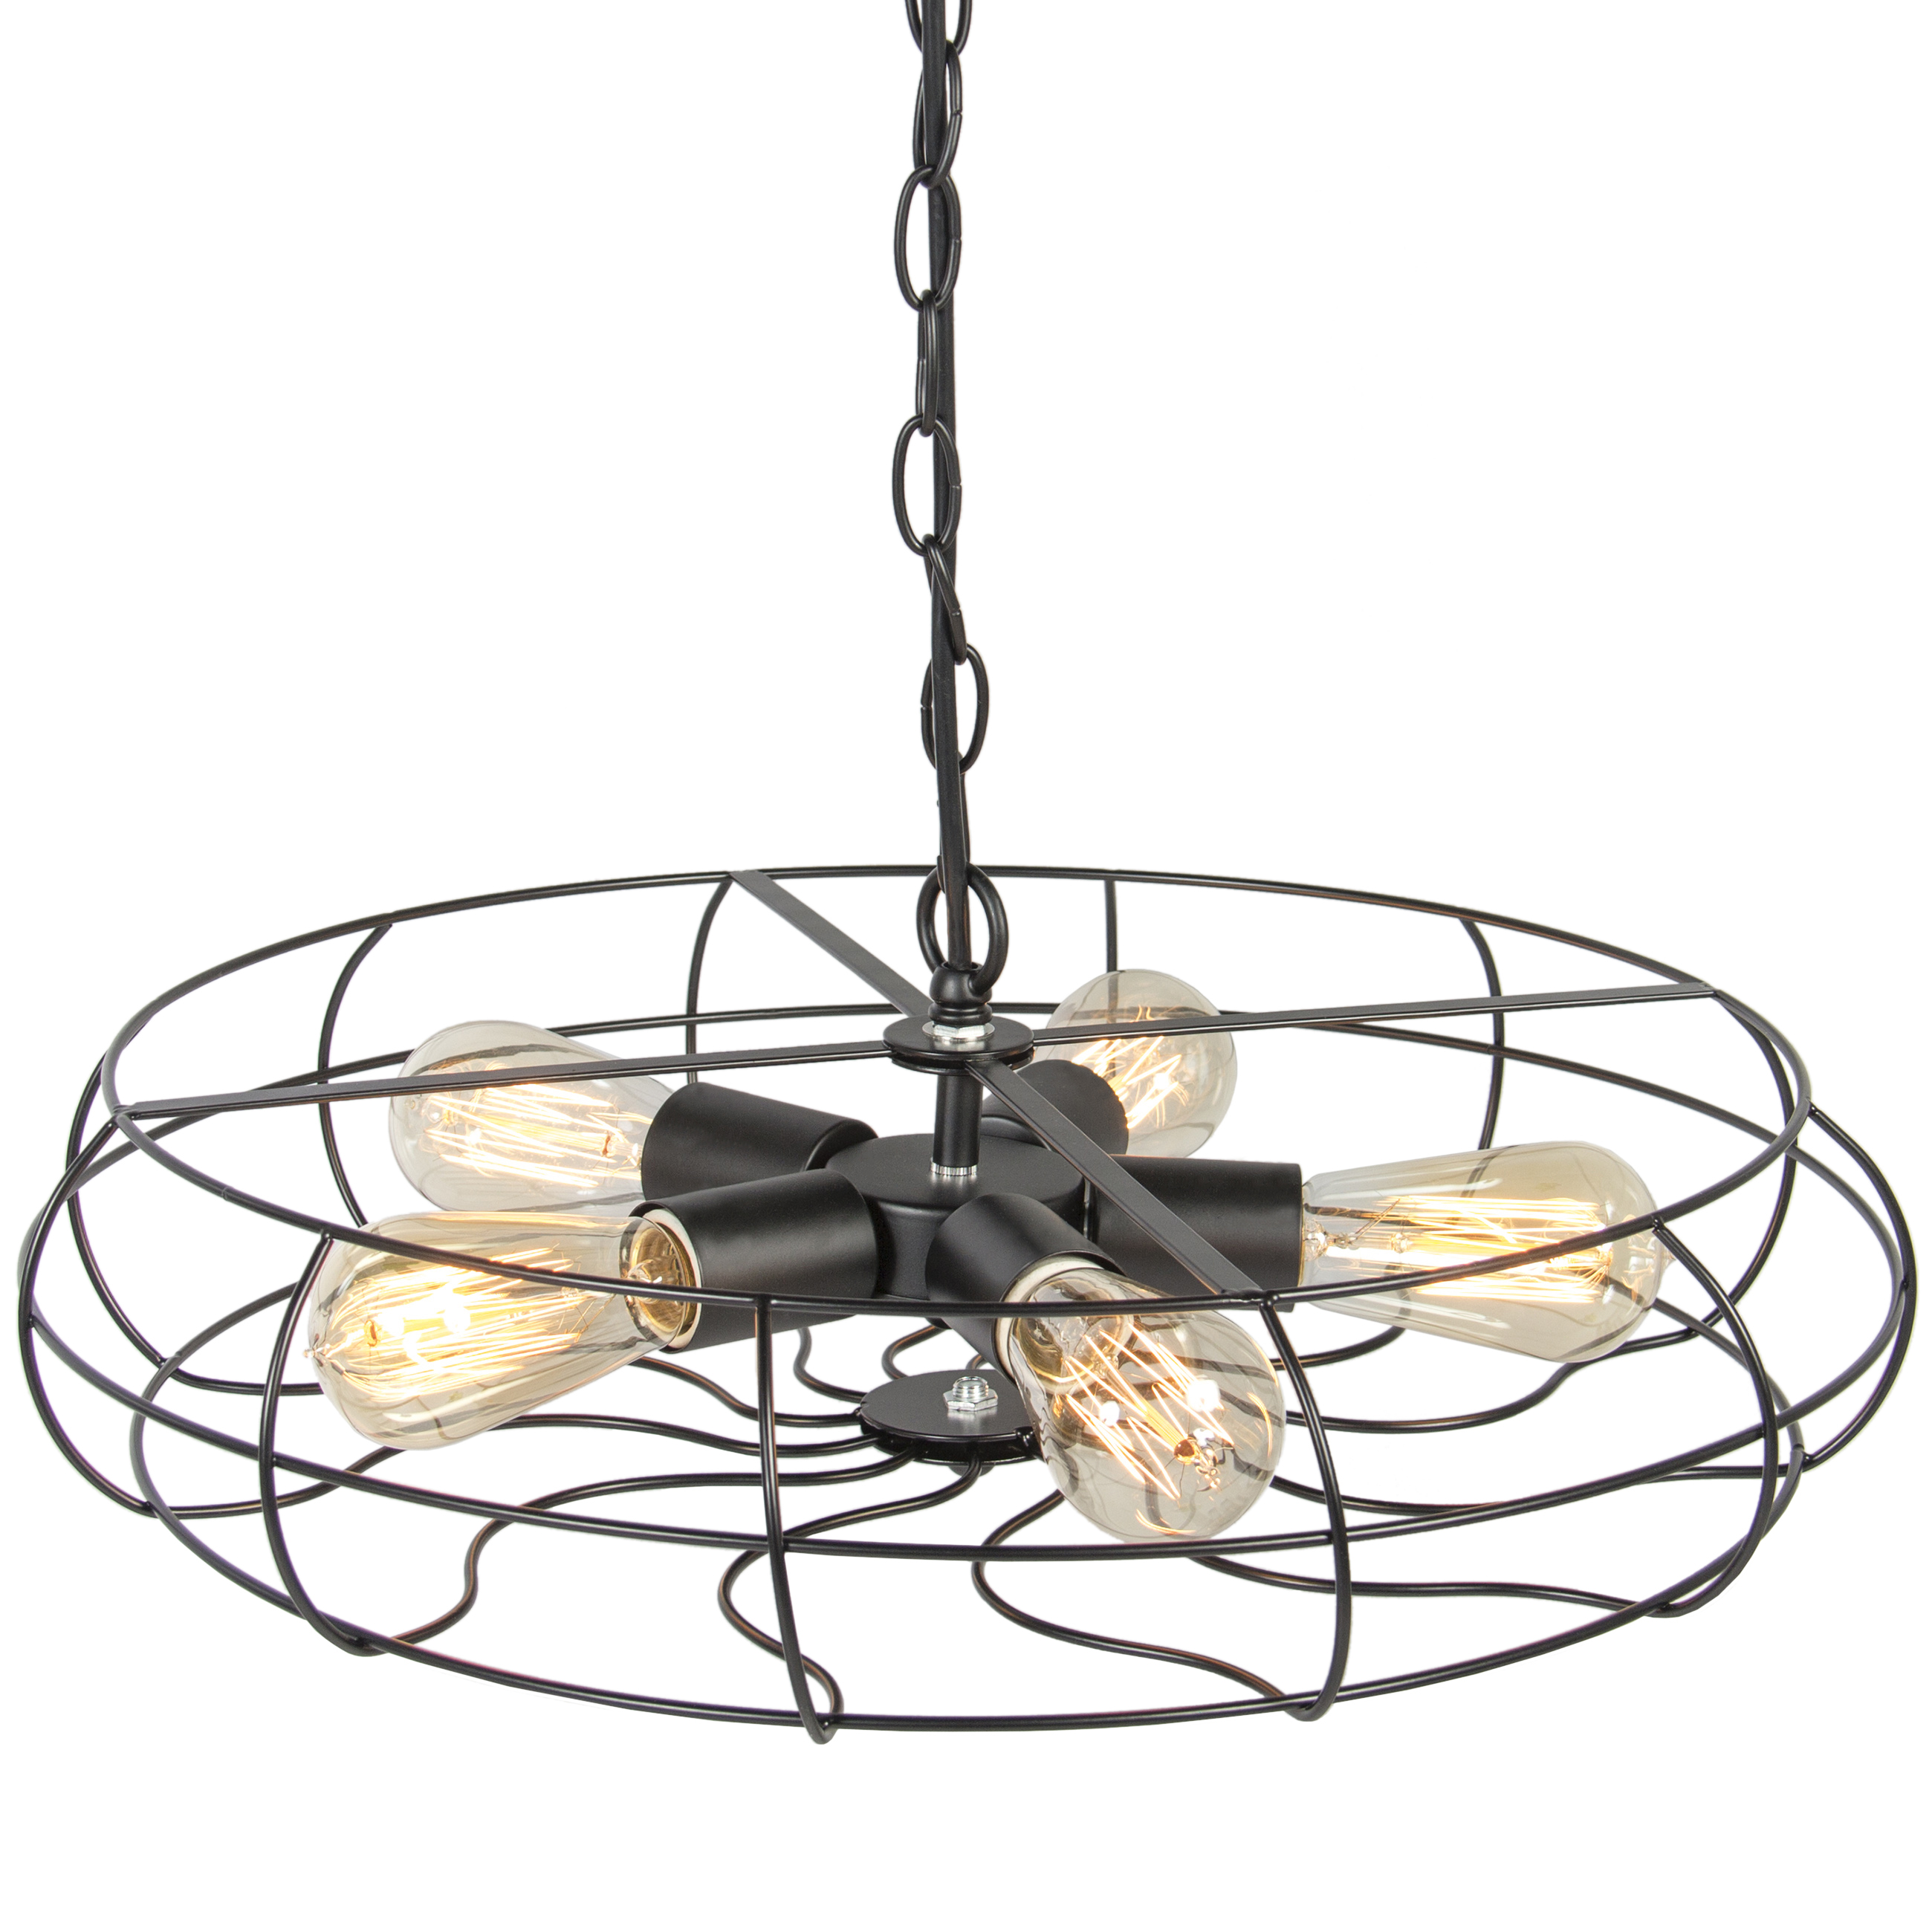 Best choice products industrial vintage lighting ceiling best choice products industrial vintage lighting ceiling chandelier 5 lights metal hanging fixture walmart mozeypictures Images